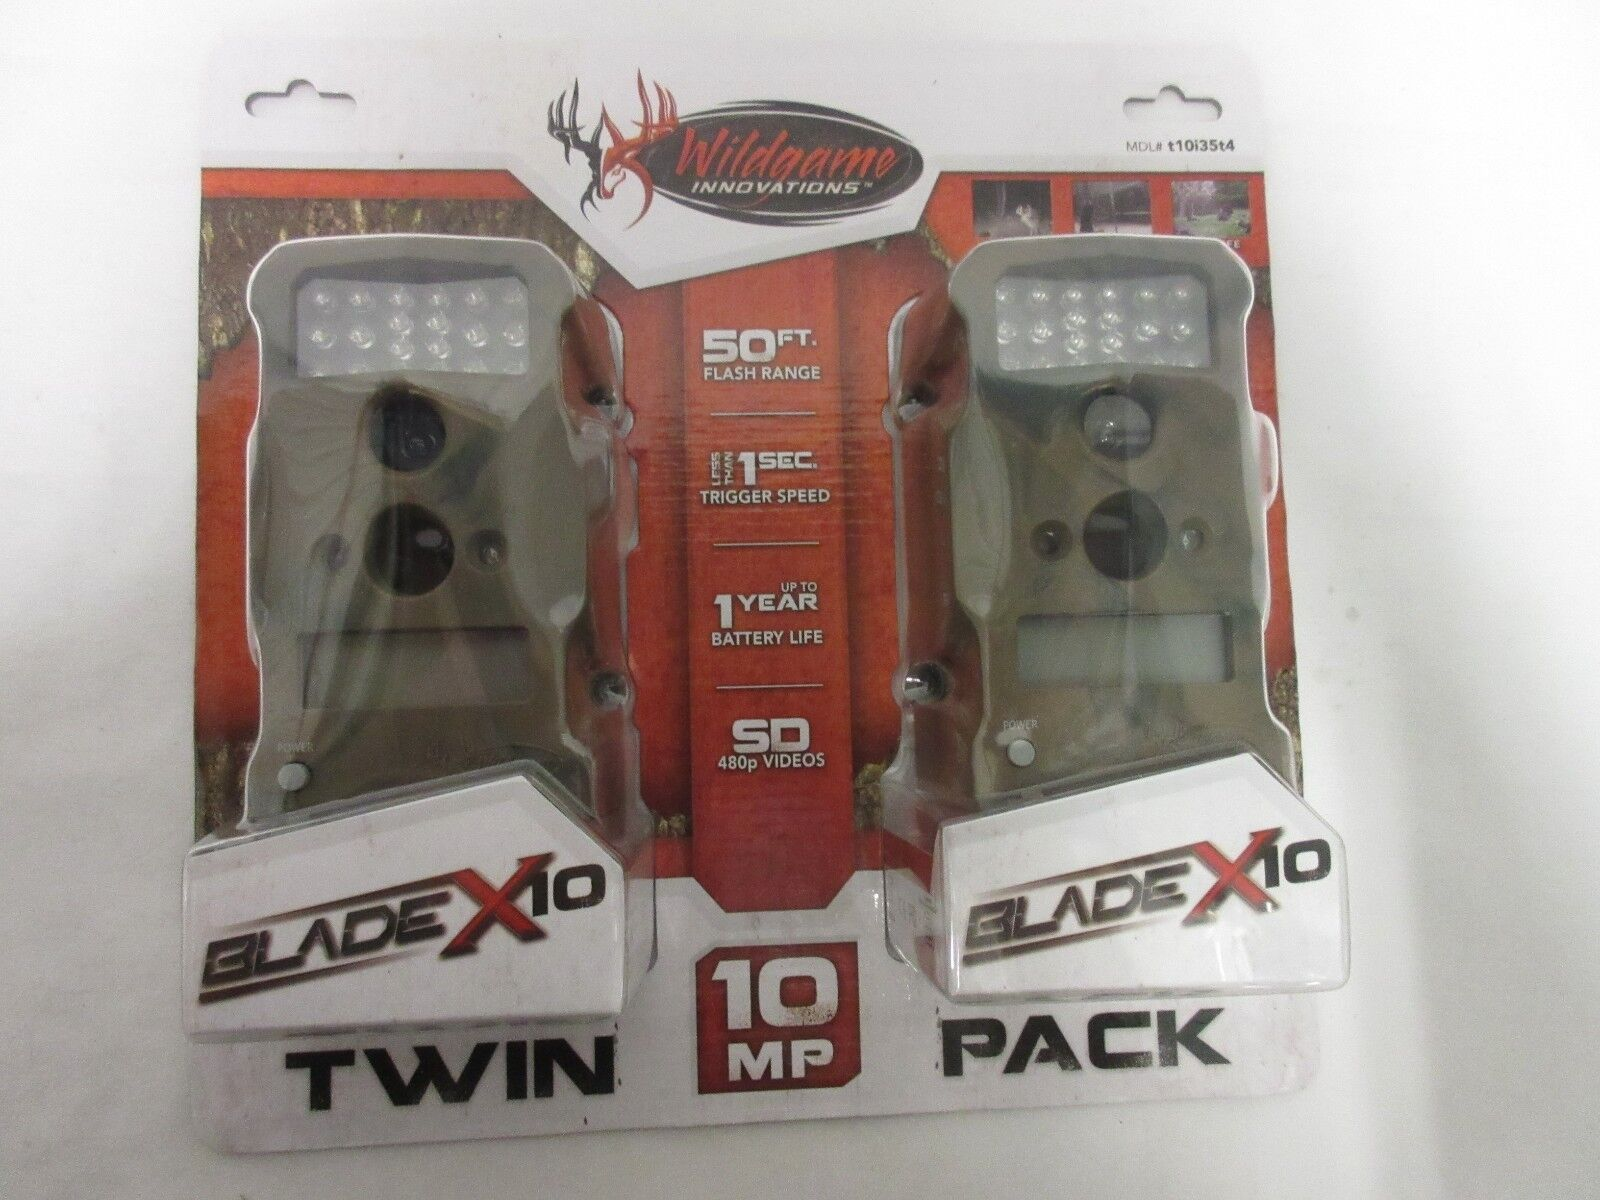 2 pack Wildgame Innovations Blade X10 Trail Camera t10i35t4